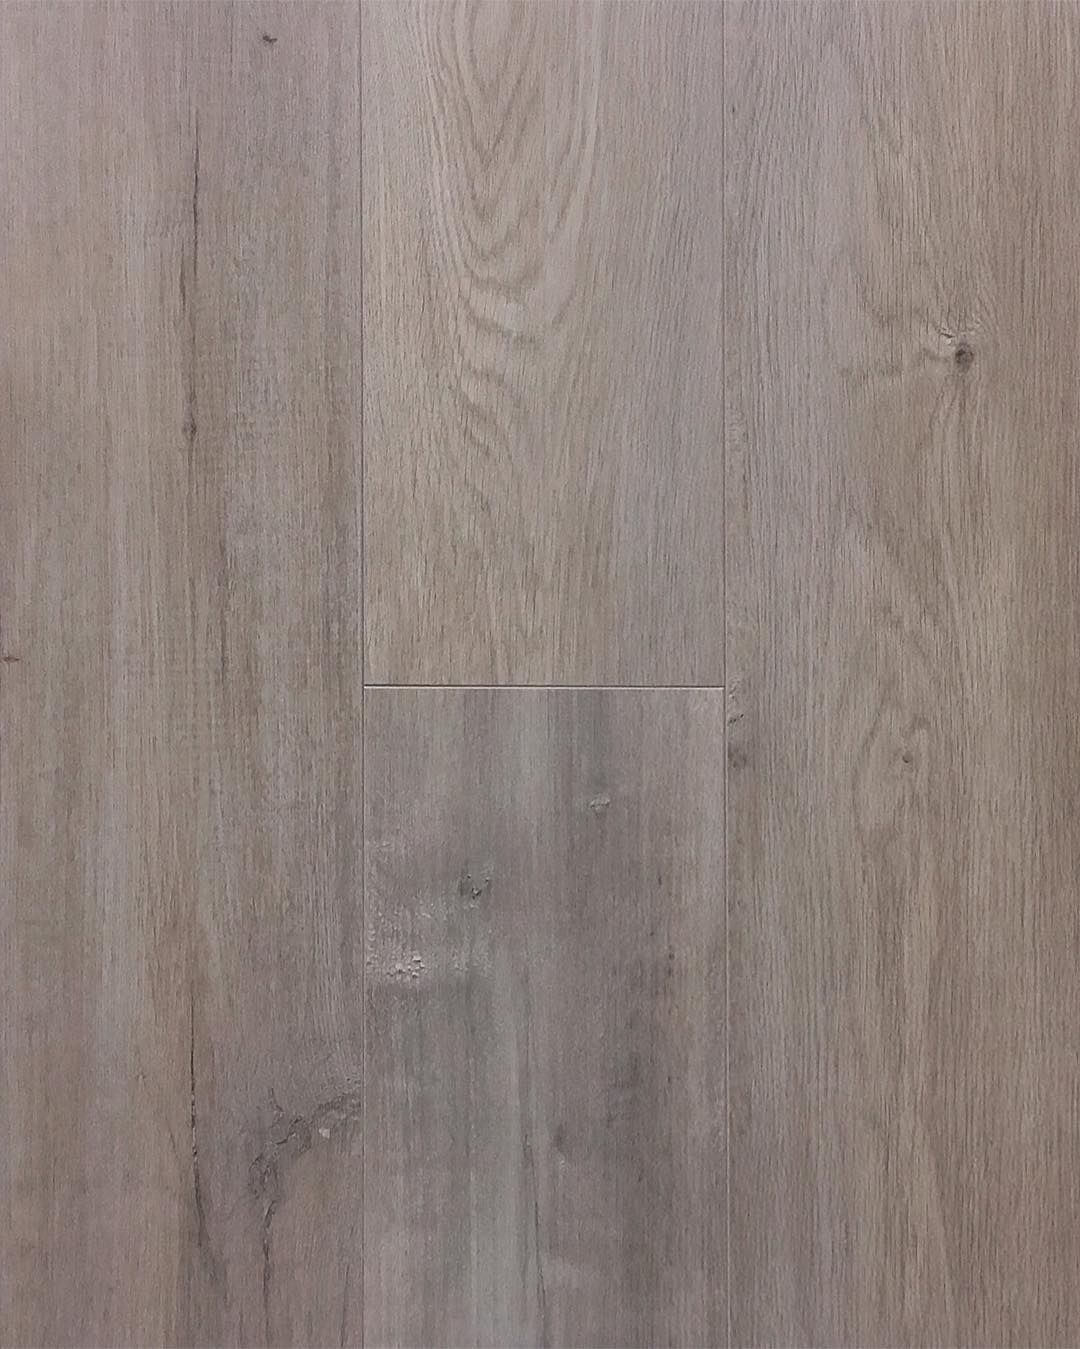 Product Beach House Ocean Grey Laminate With Great Dimensions And A Natural Feel Matte Finish Best Price In The Industry Flooring Laminate Instagram Posts